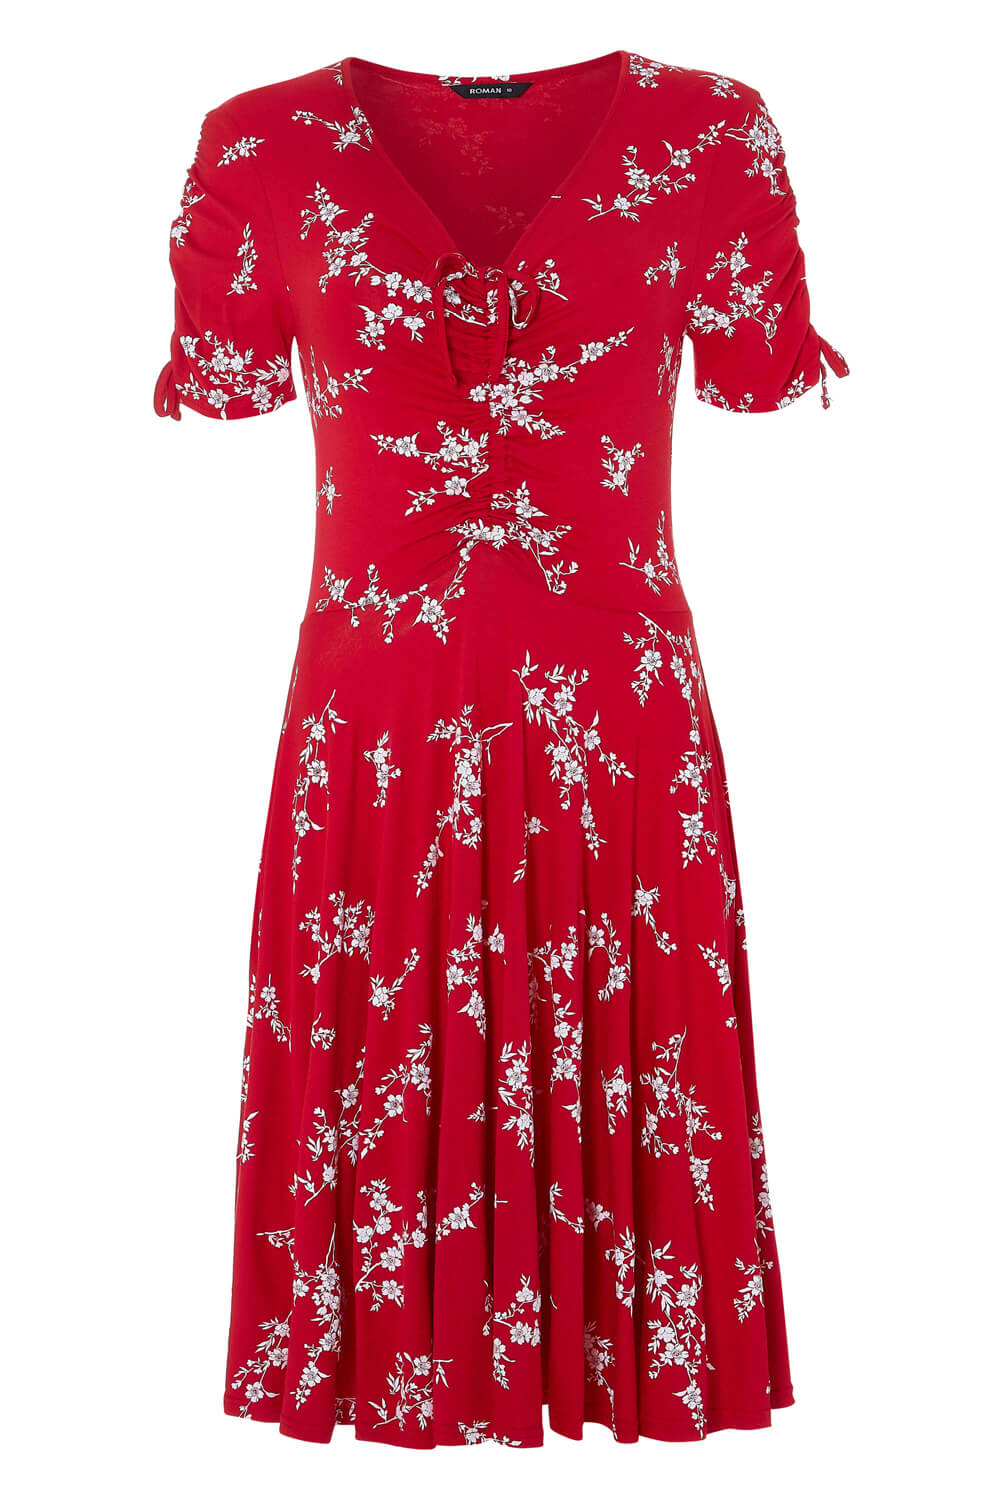 Roman-Originals-Womens-Red-Floral-V-Neck-Short-Sleeve-Dress-Size-10-20 thumbnail 12